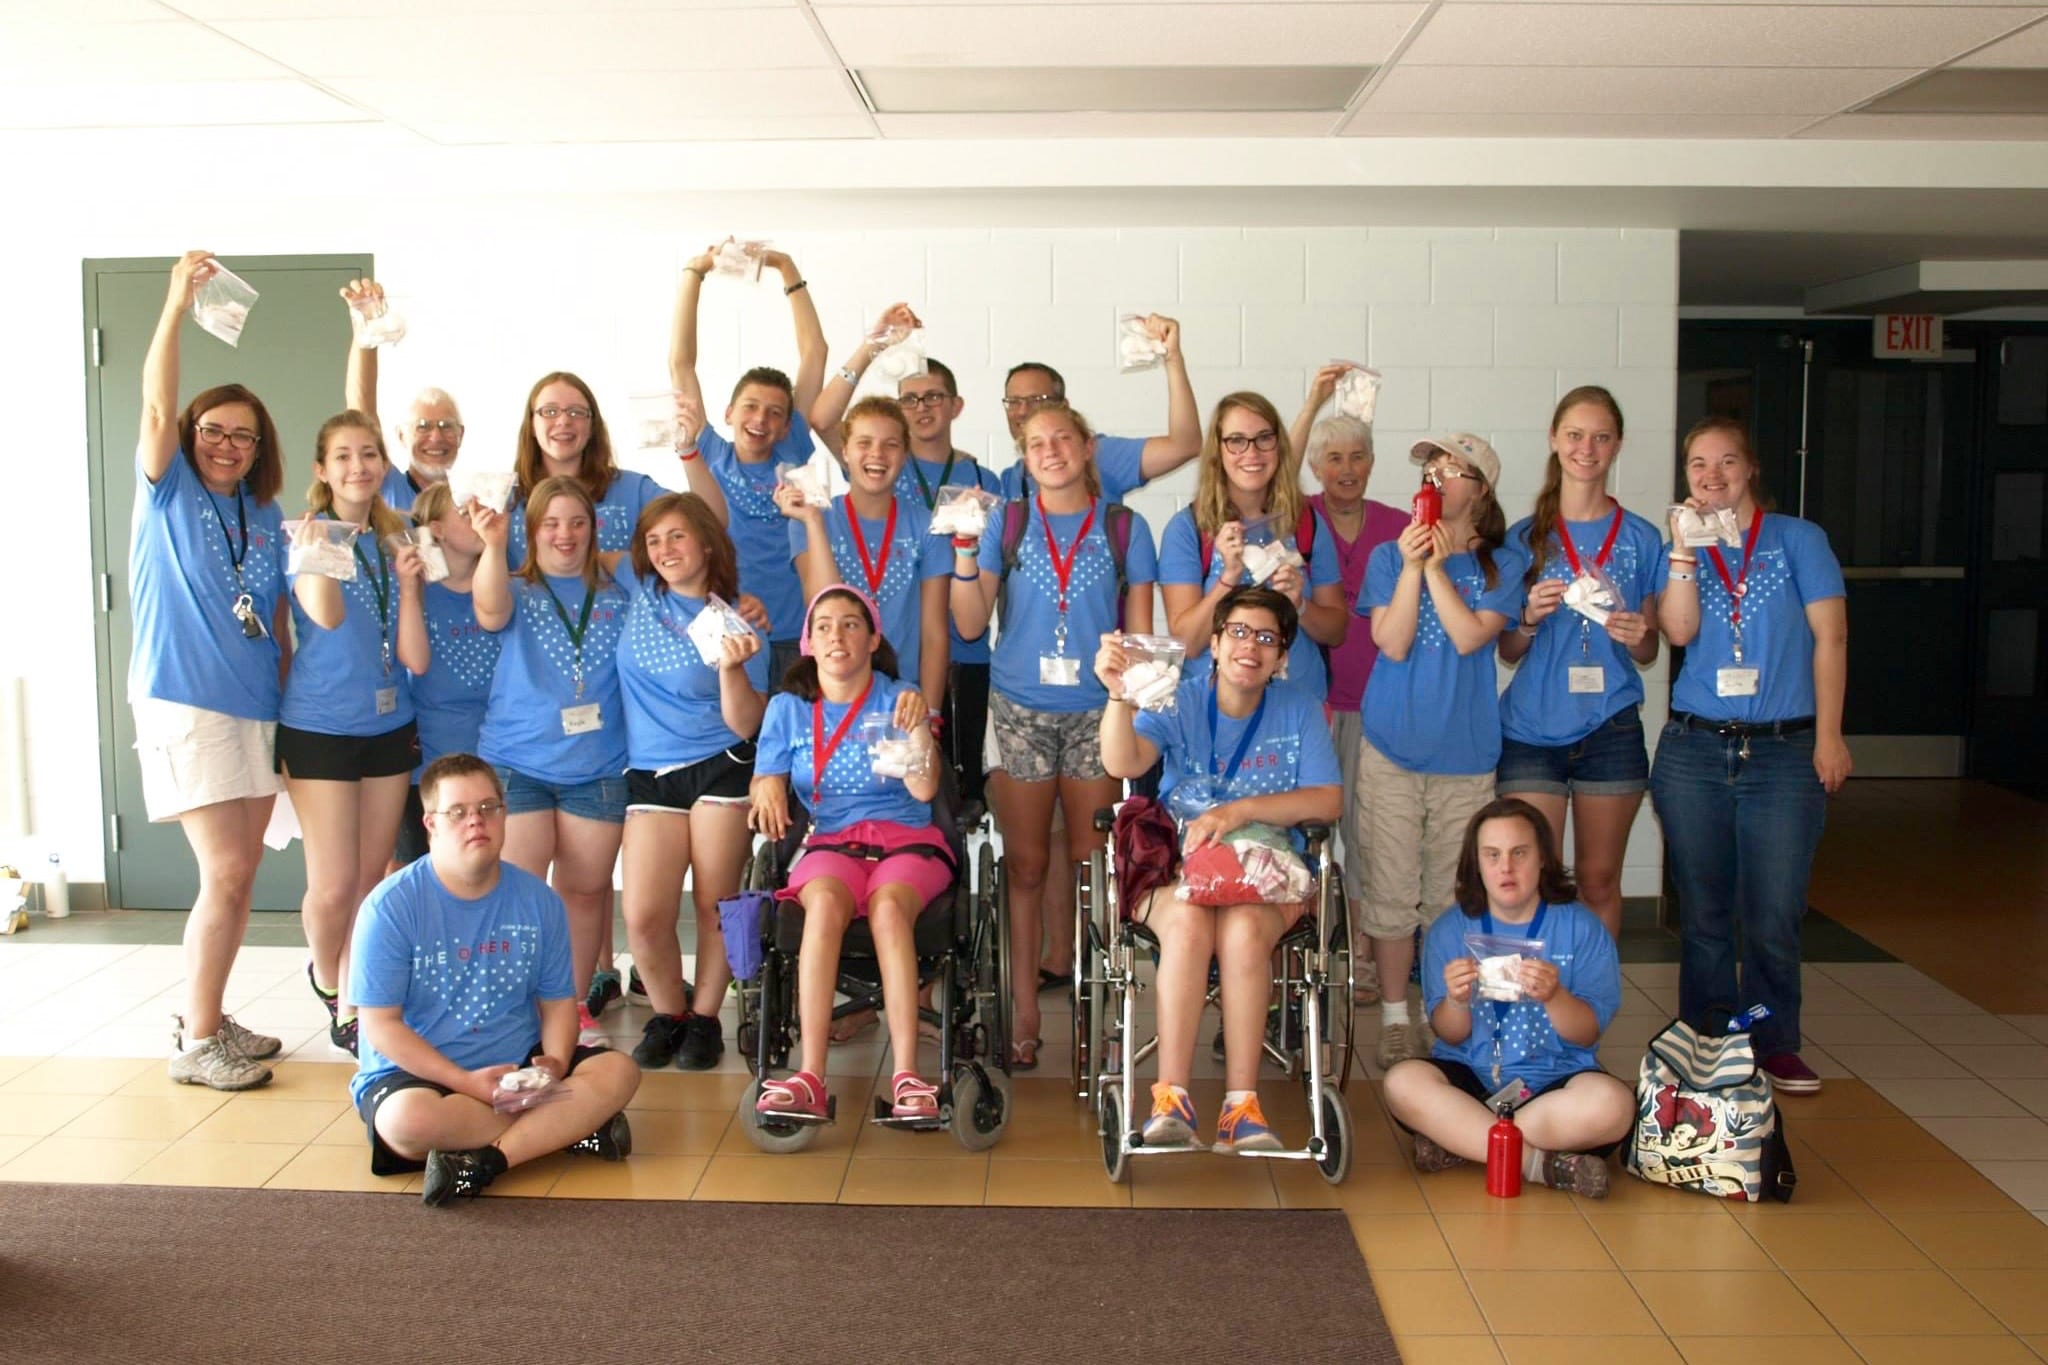 Special needs teen mission trip participants in Fruitland, Ontario